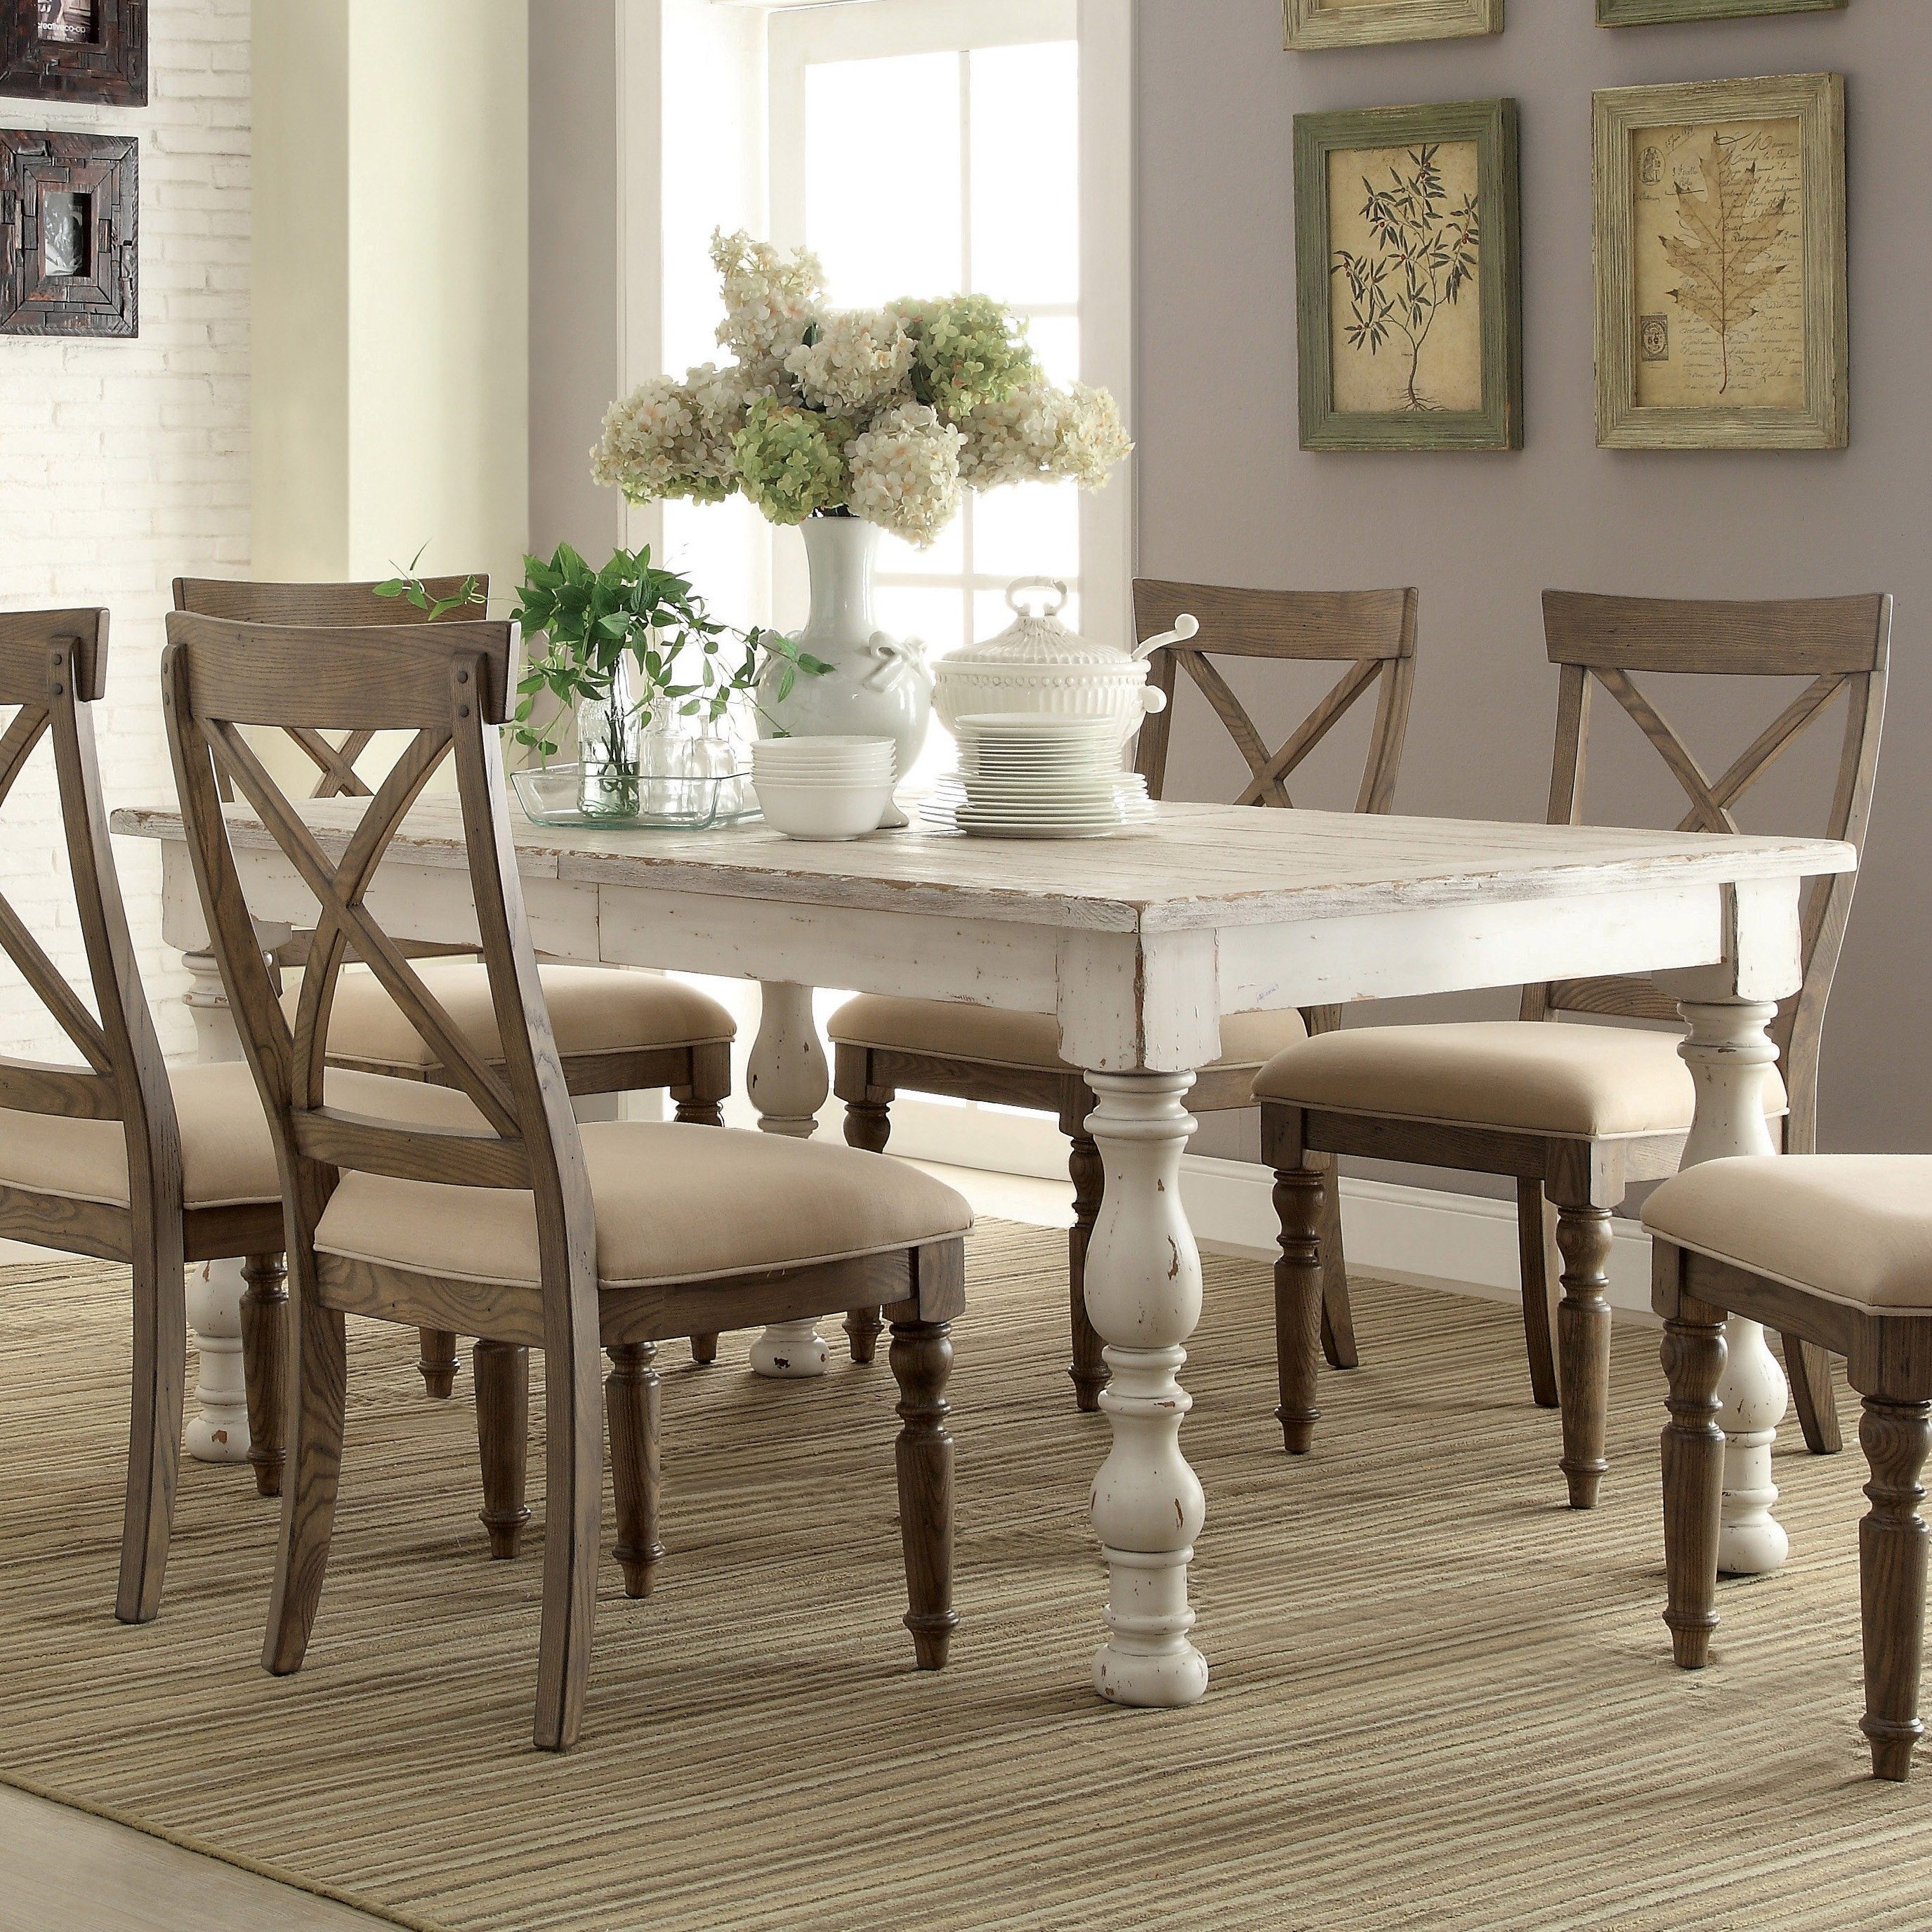 Aberdeen wood rectangular dining table and chairs in for Wooden dining table and chairs